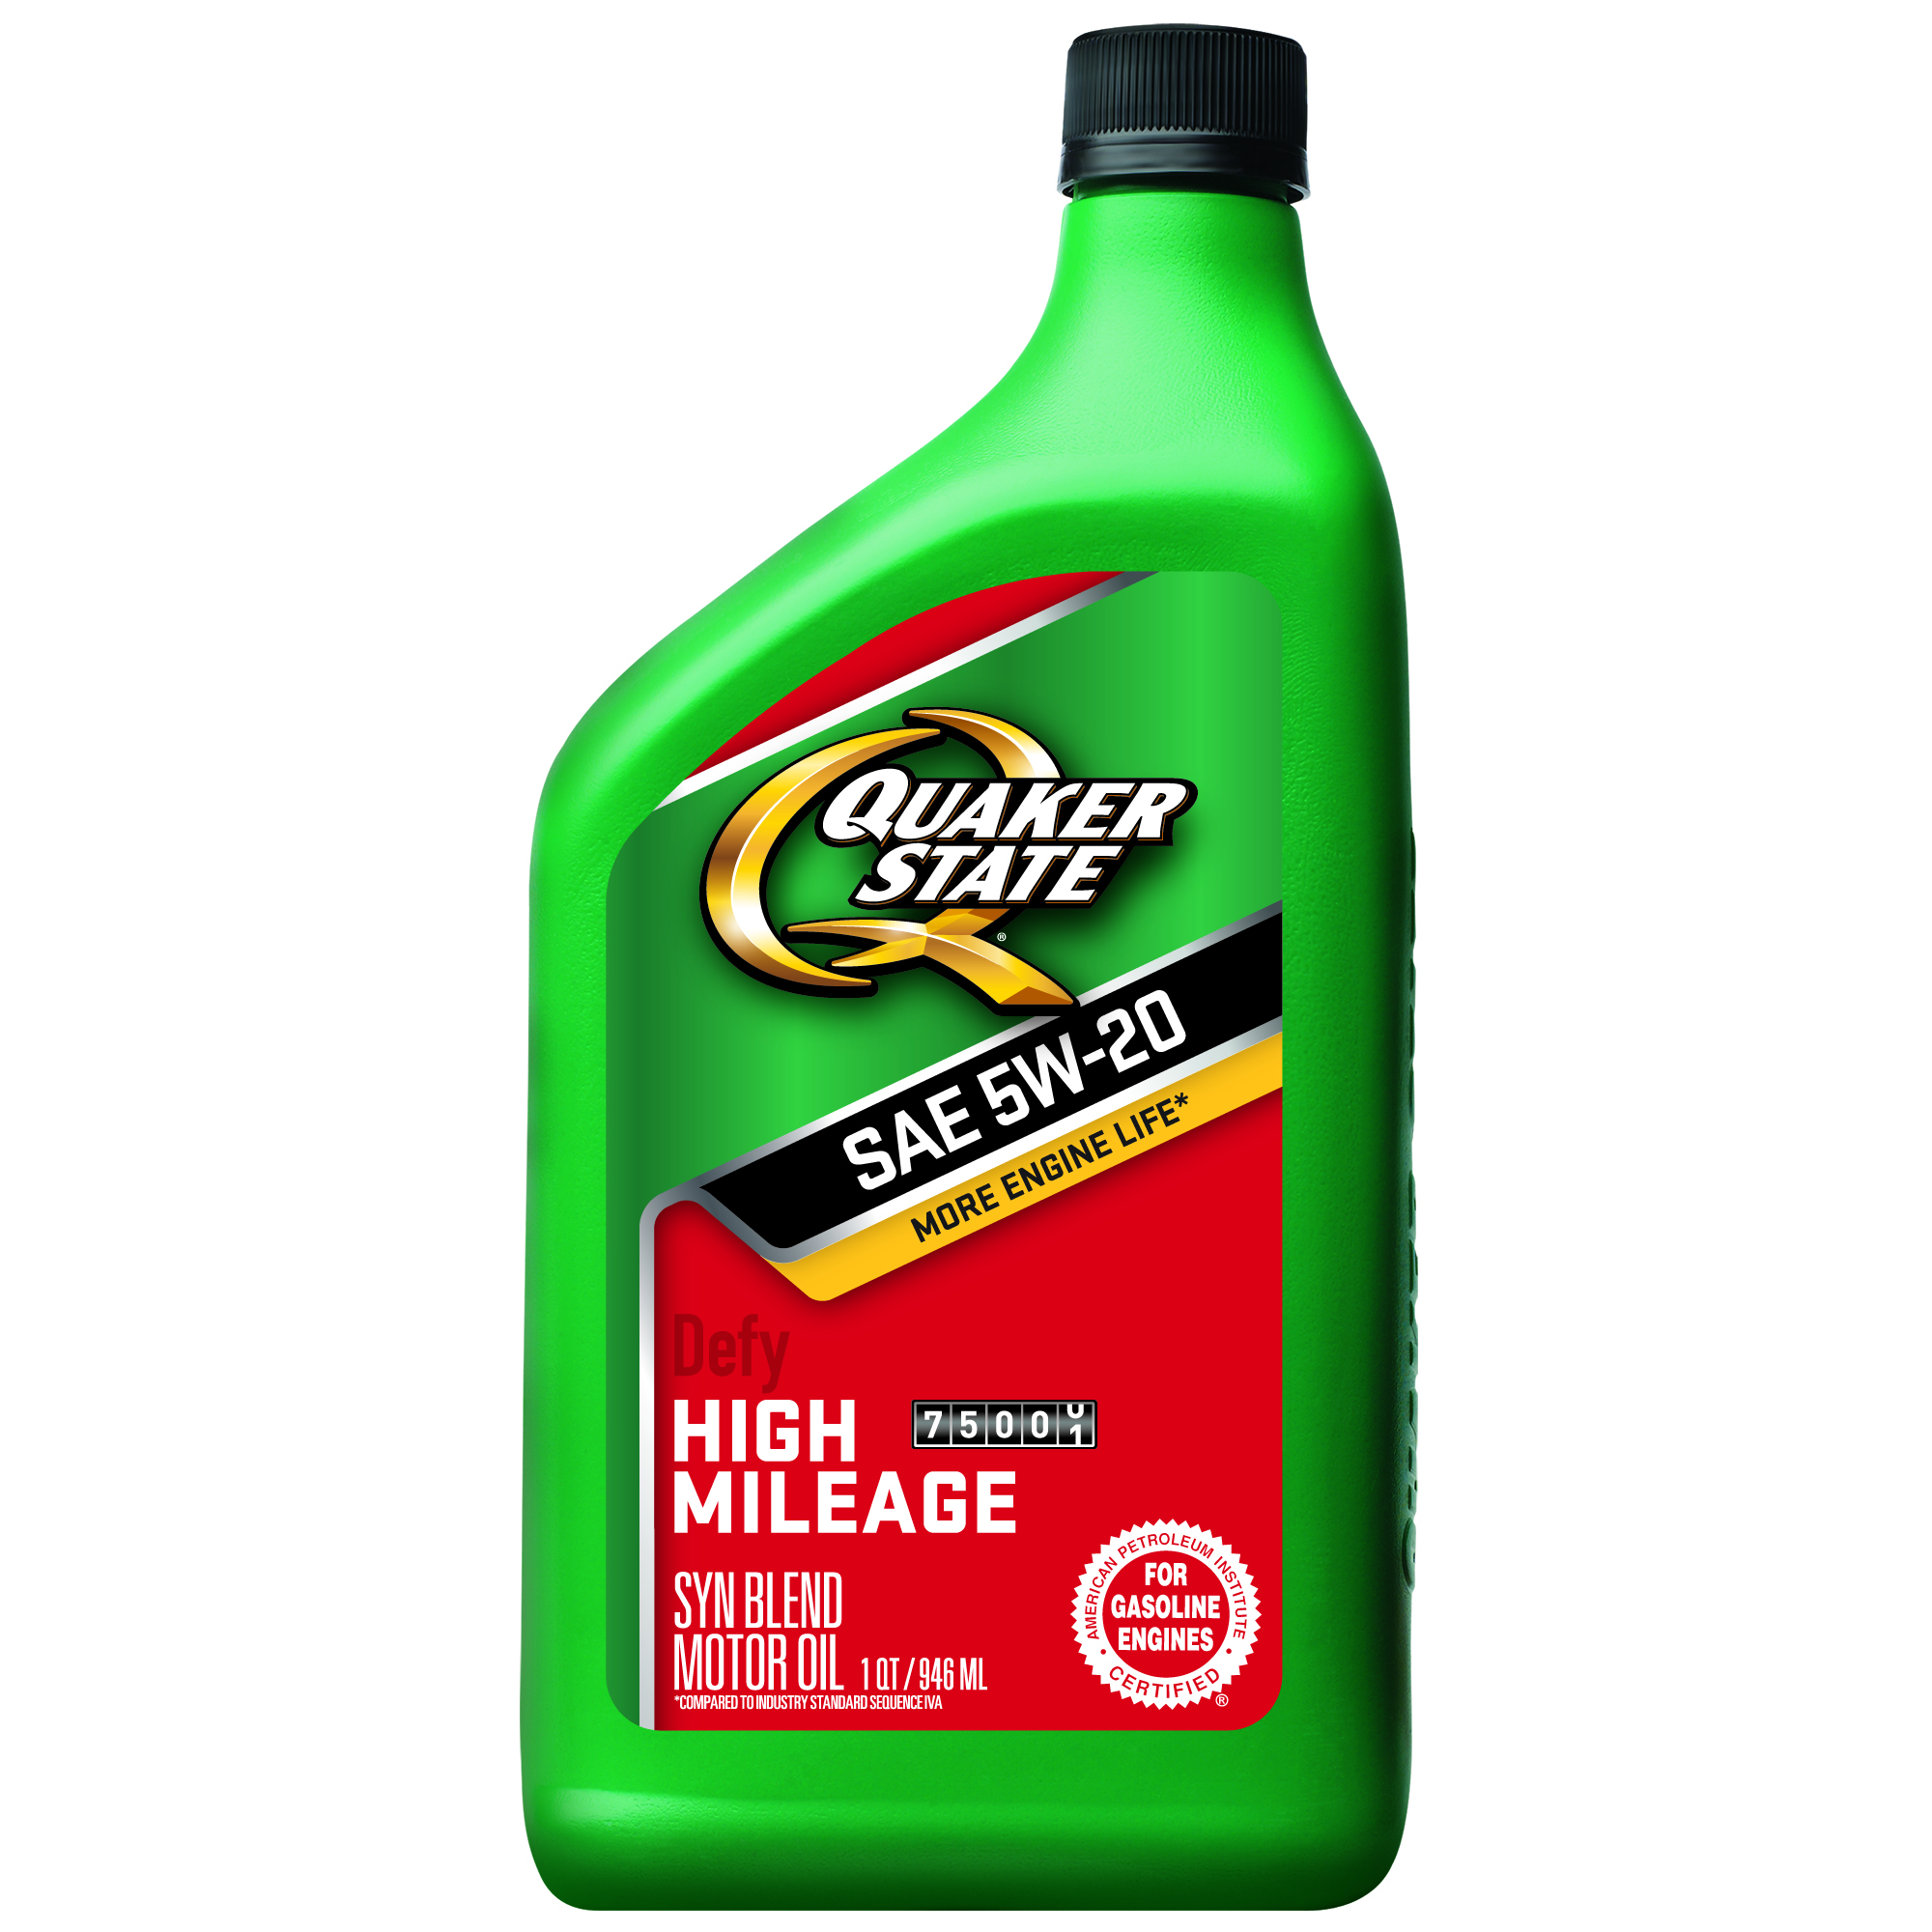 Quaker State Synthetic Blend High Mileage 5W-20 Motor Oil, 1 qt